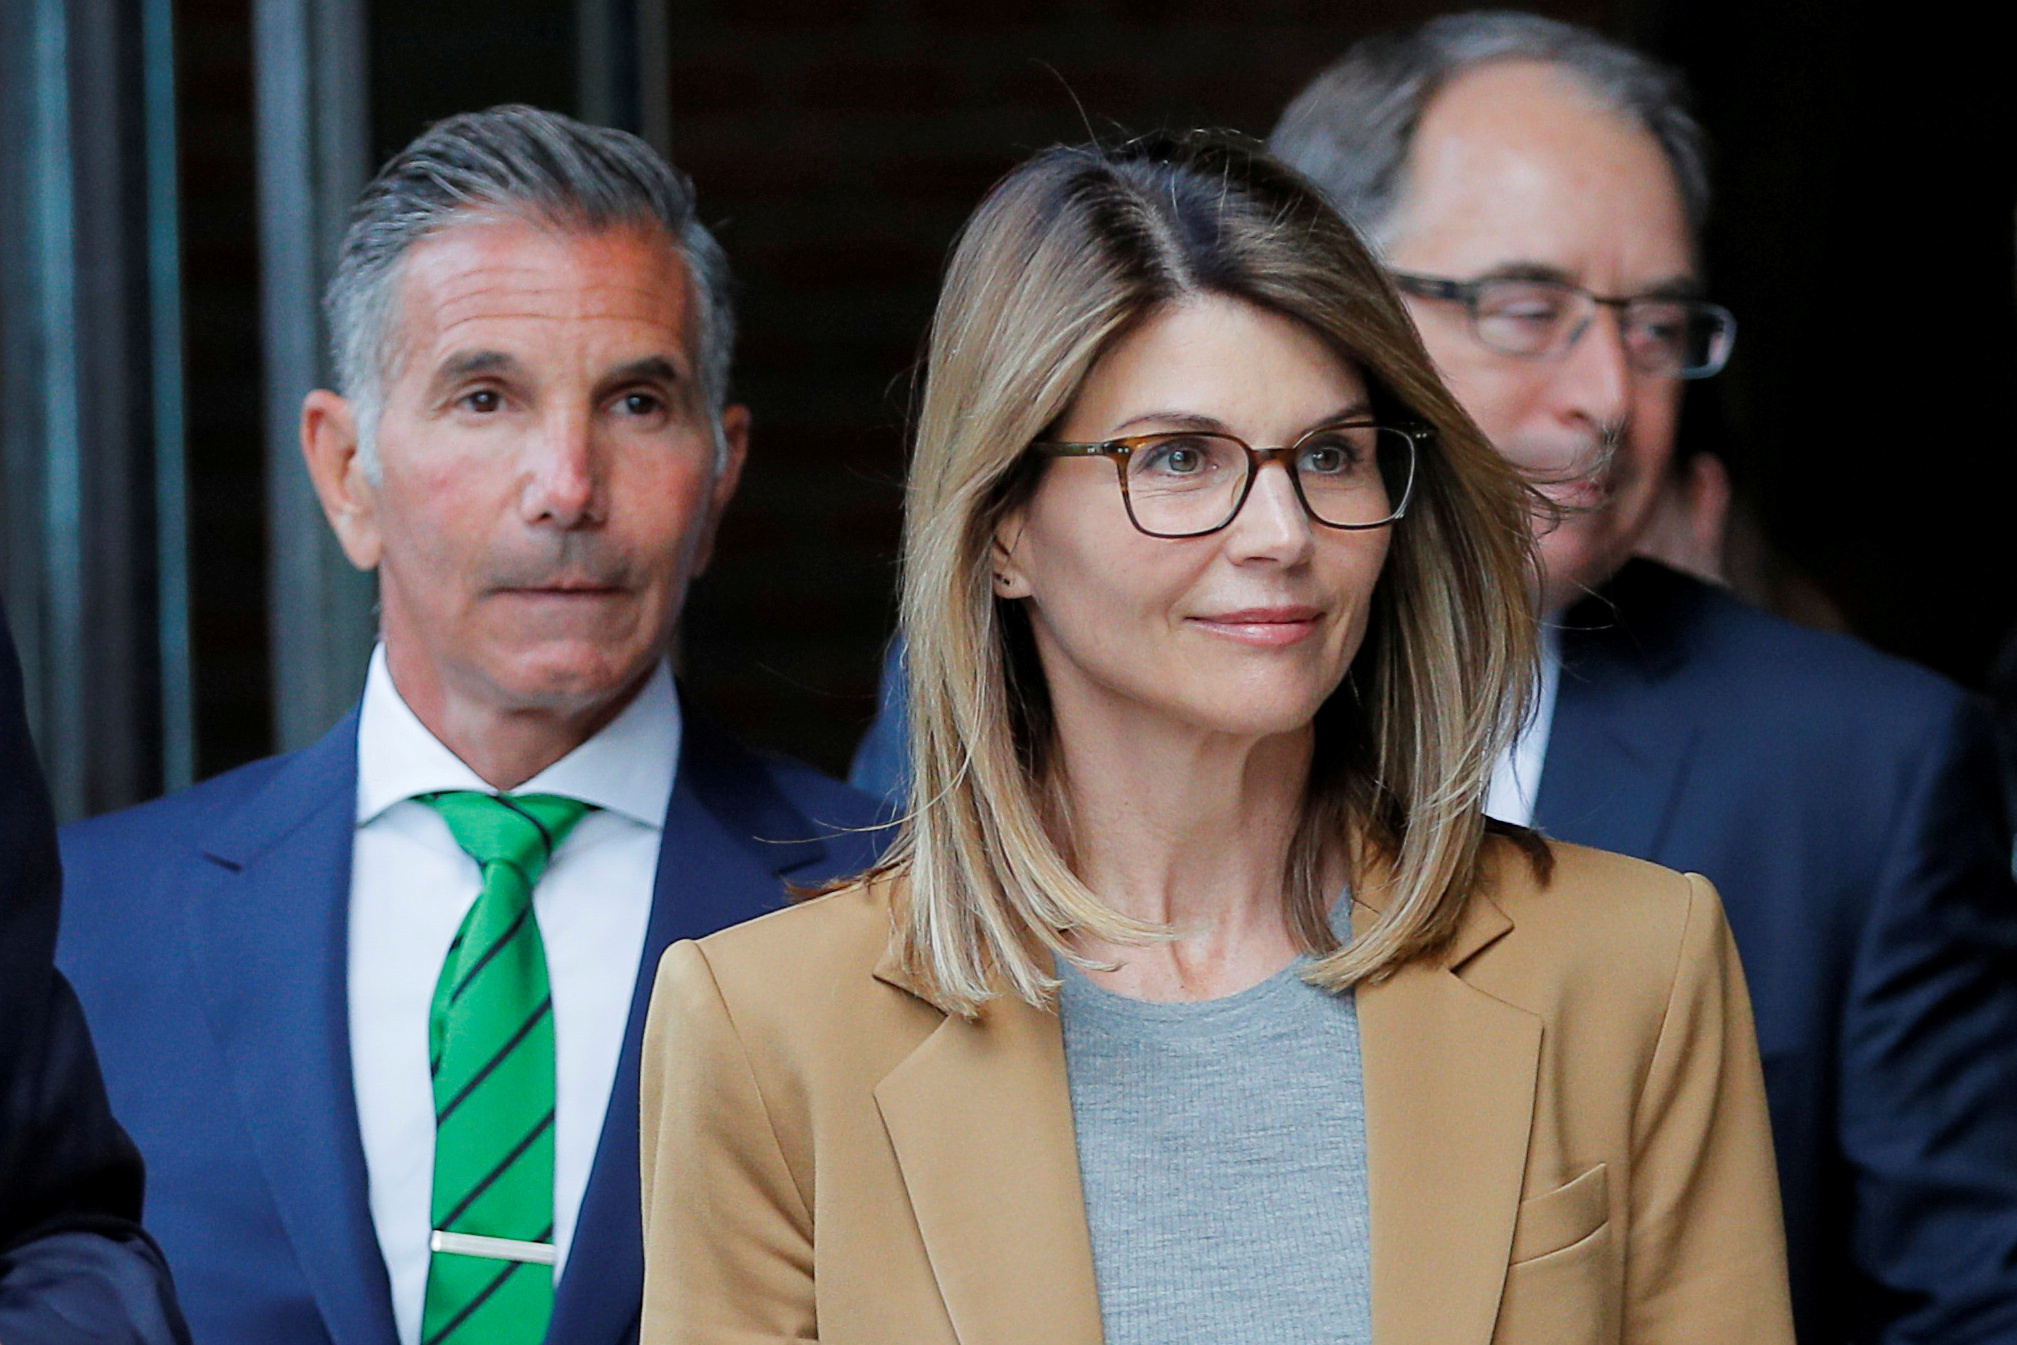 Actor Lori Loughlin, and her husband, fashion designer Mossimo Giannulli, leave the federal courthouse after facing charges in a nationwide college admissions cheating scheme, in Boston